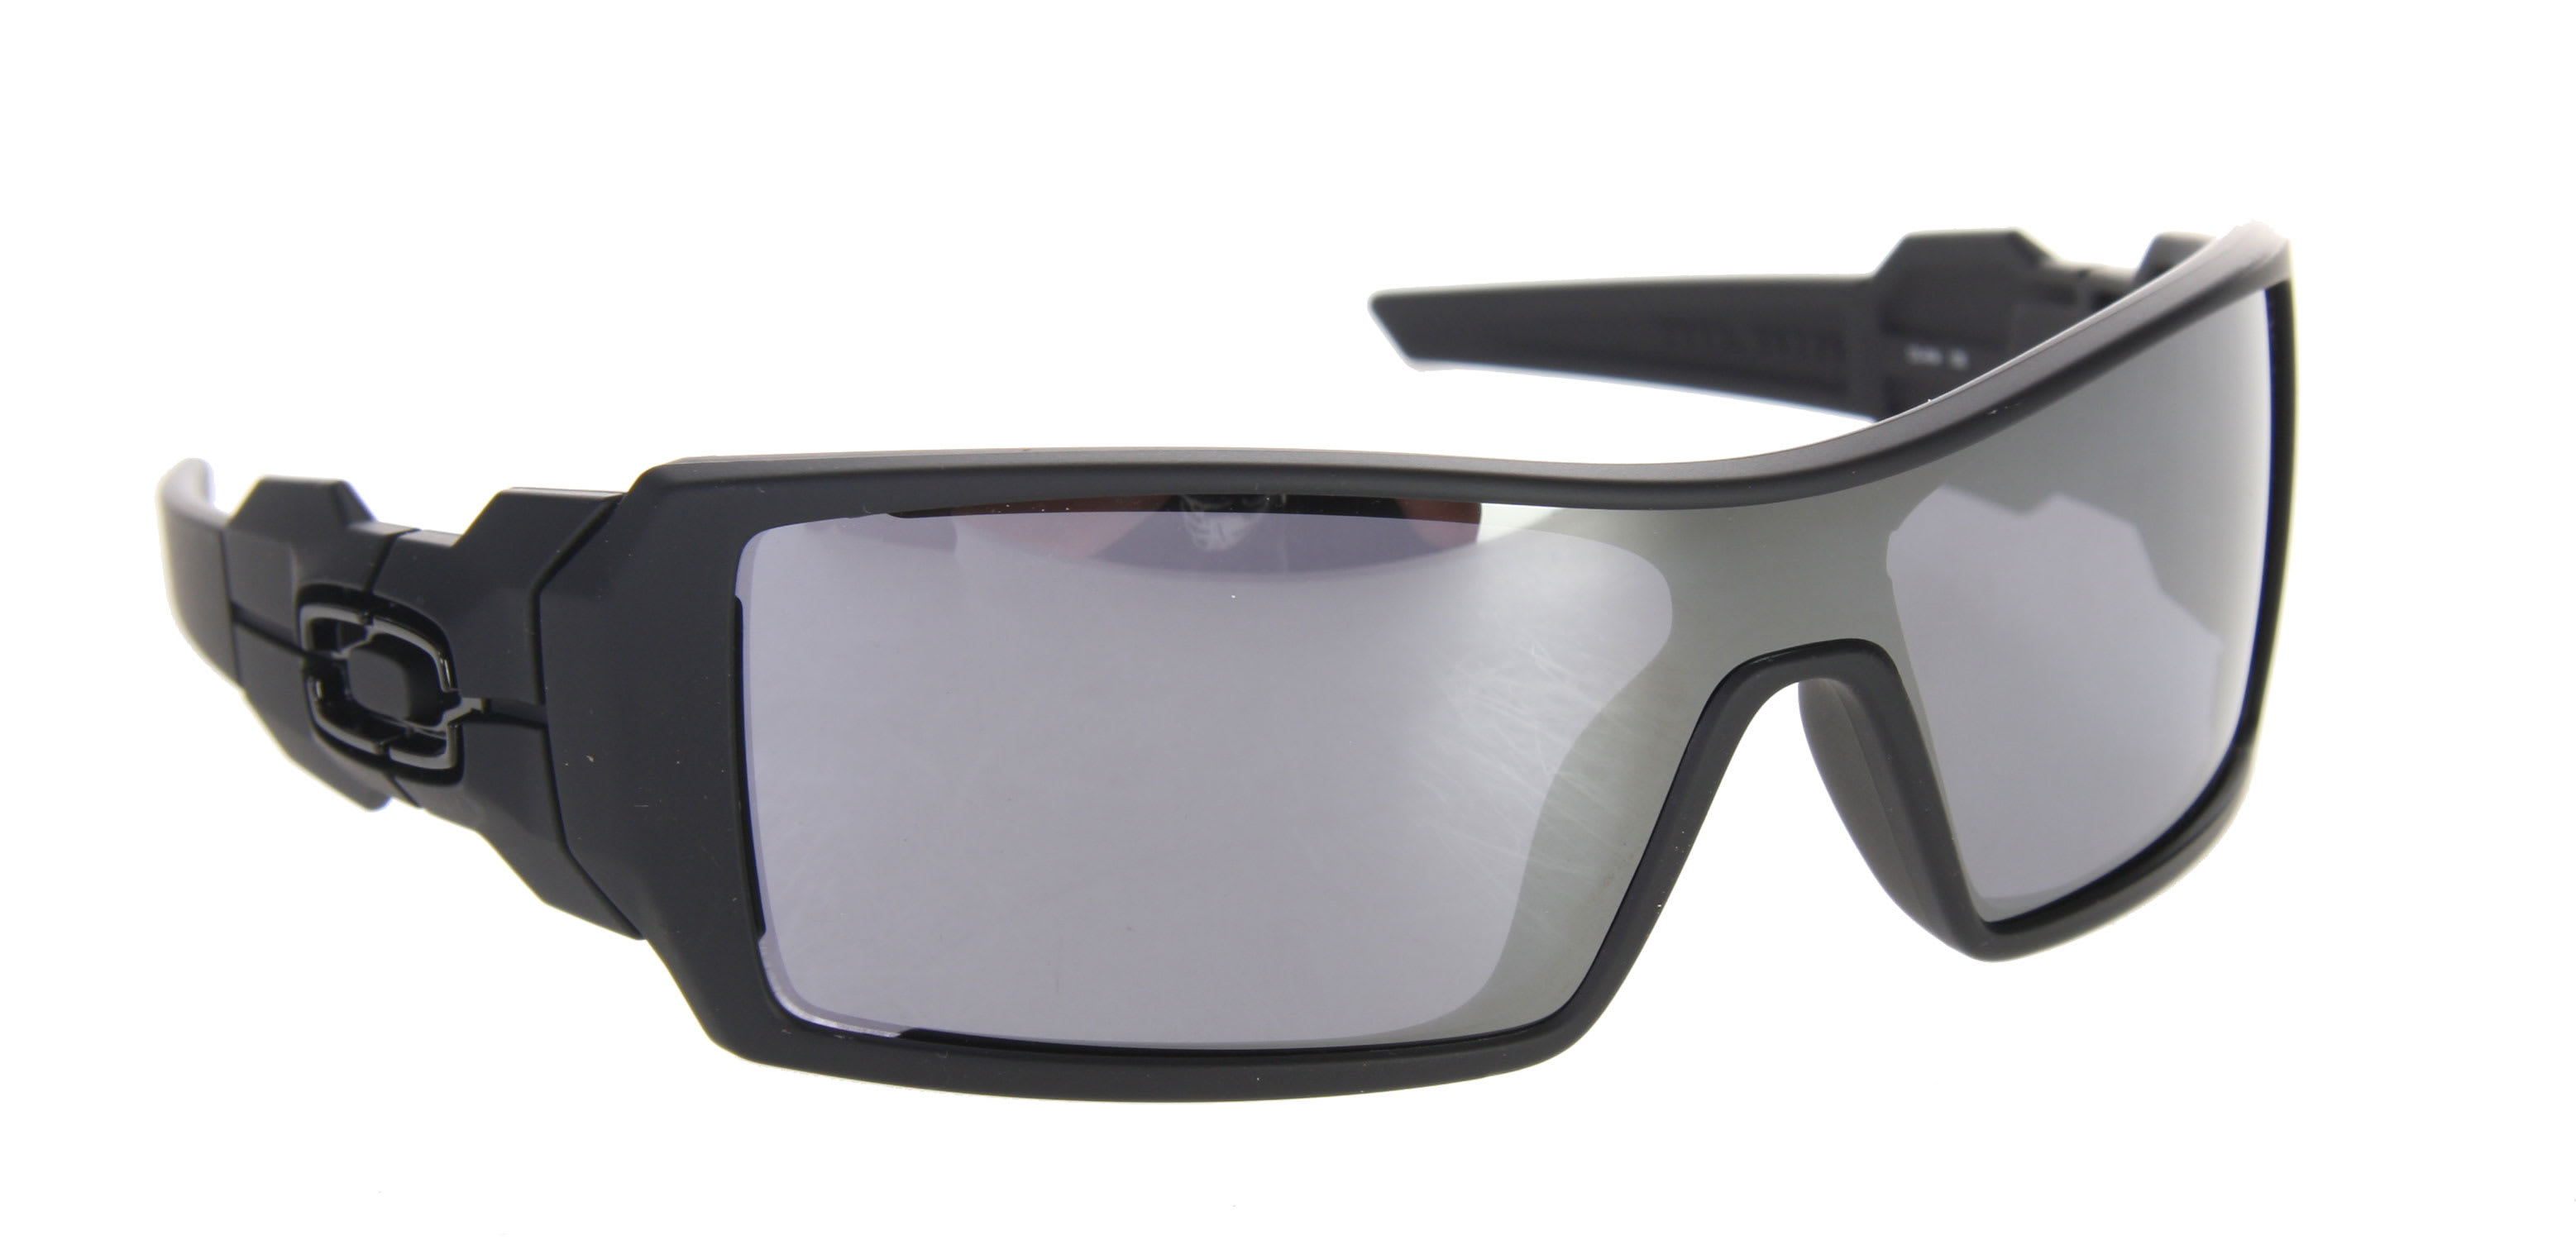 oakley oil rig sunglasses accessories  oakley oil rig sunglasses thumbnail 1